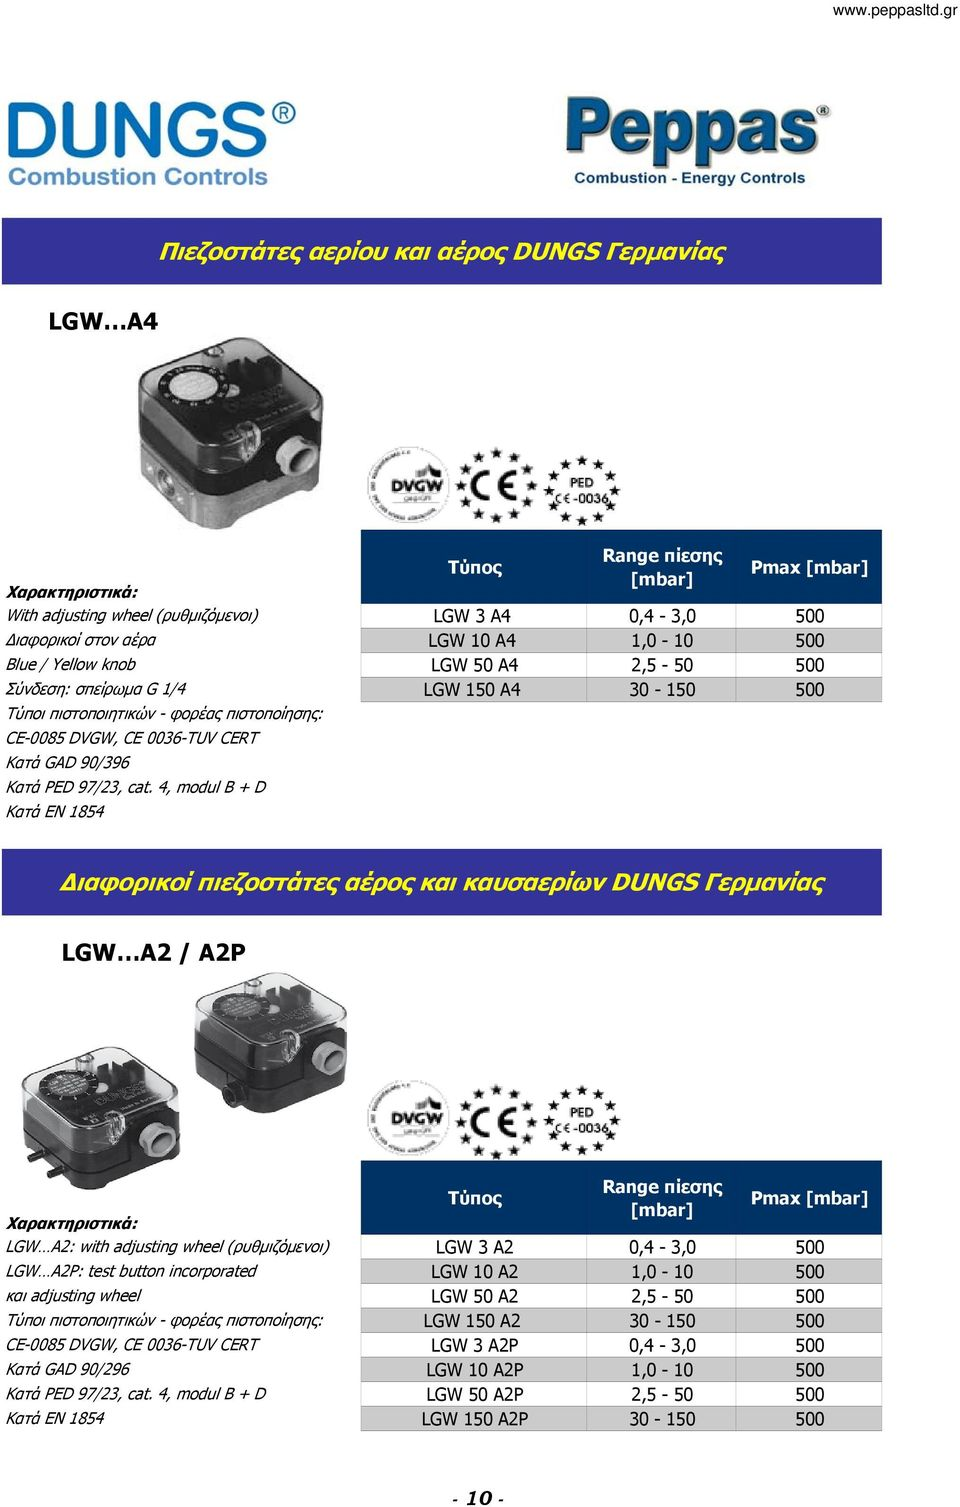 DUNGS Γερµανίας LGW Α2 / Α2Ρ LGW A2: with adjusting wheel (ρυθµιζόµενοι) LGW A2P: test button incorporated και adjusting wheel Κατά GAD 90/296 Κατά PED 97/23, cat.